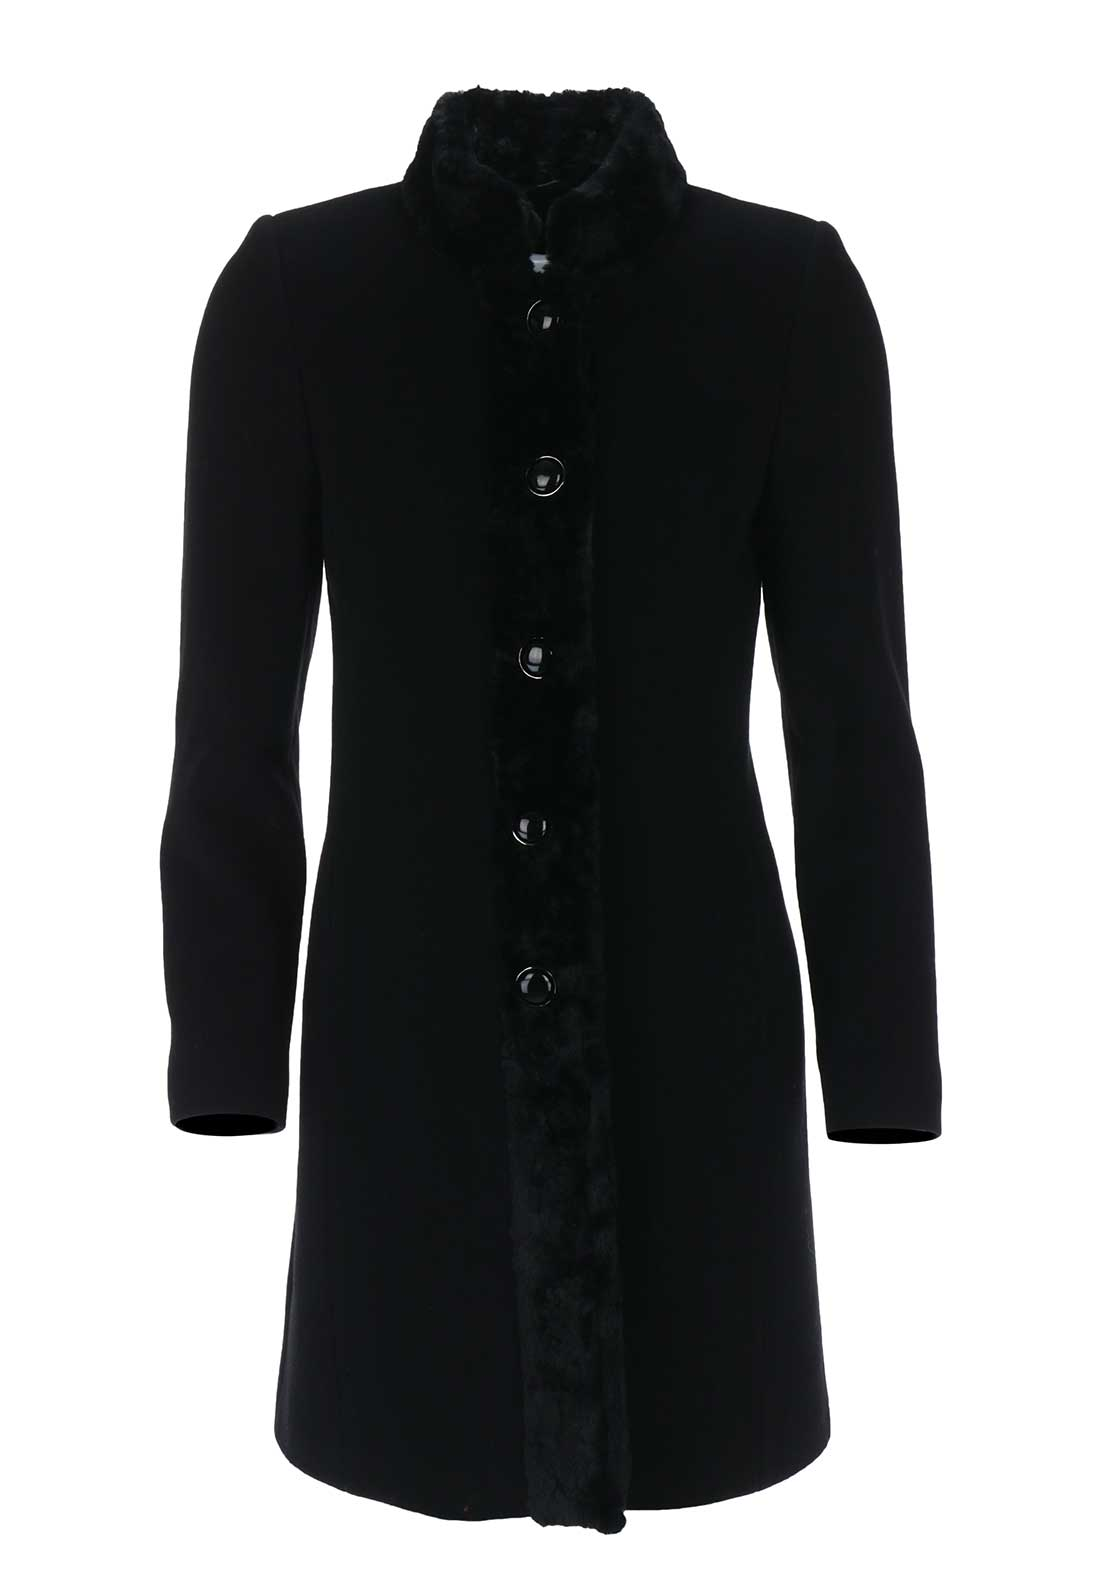 Christina Felix Faux Fur Trim Wool Coat, Black